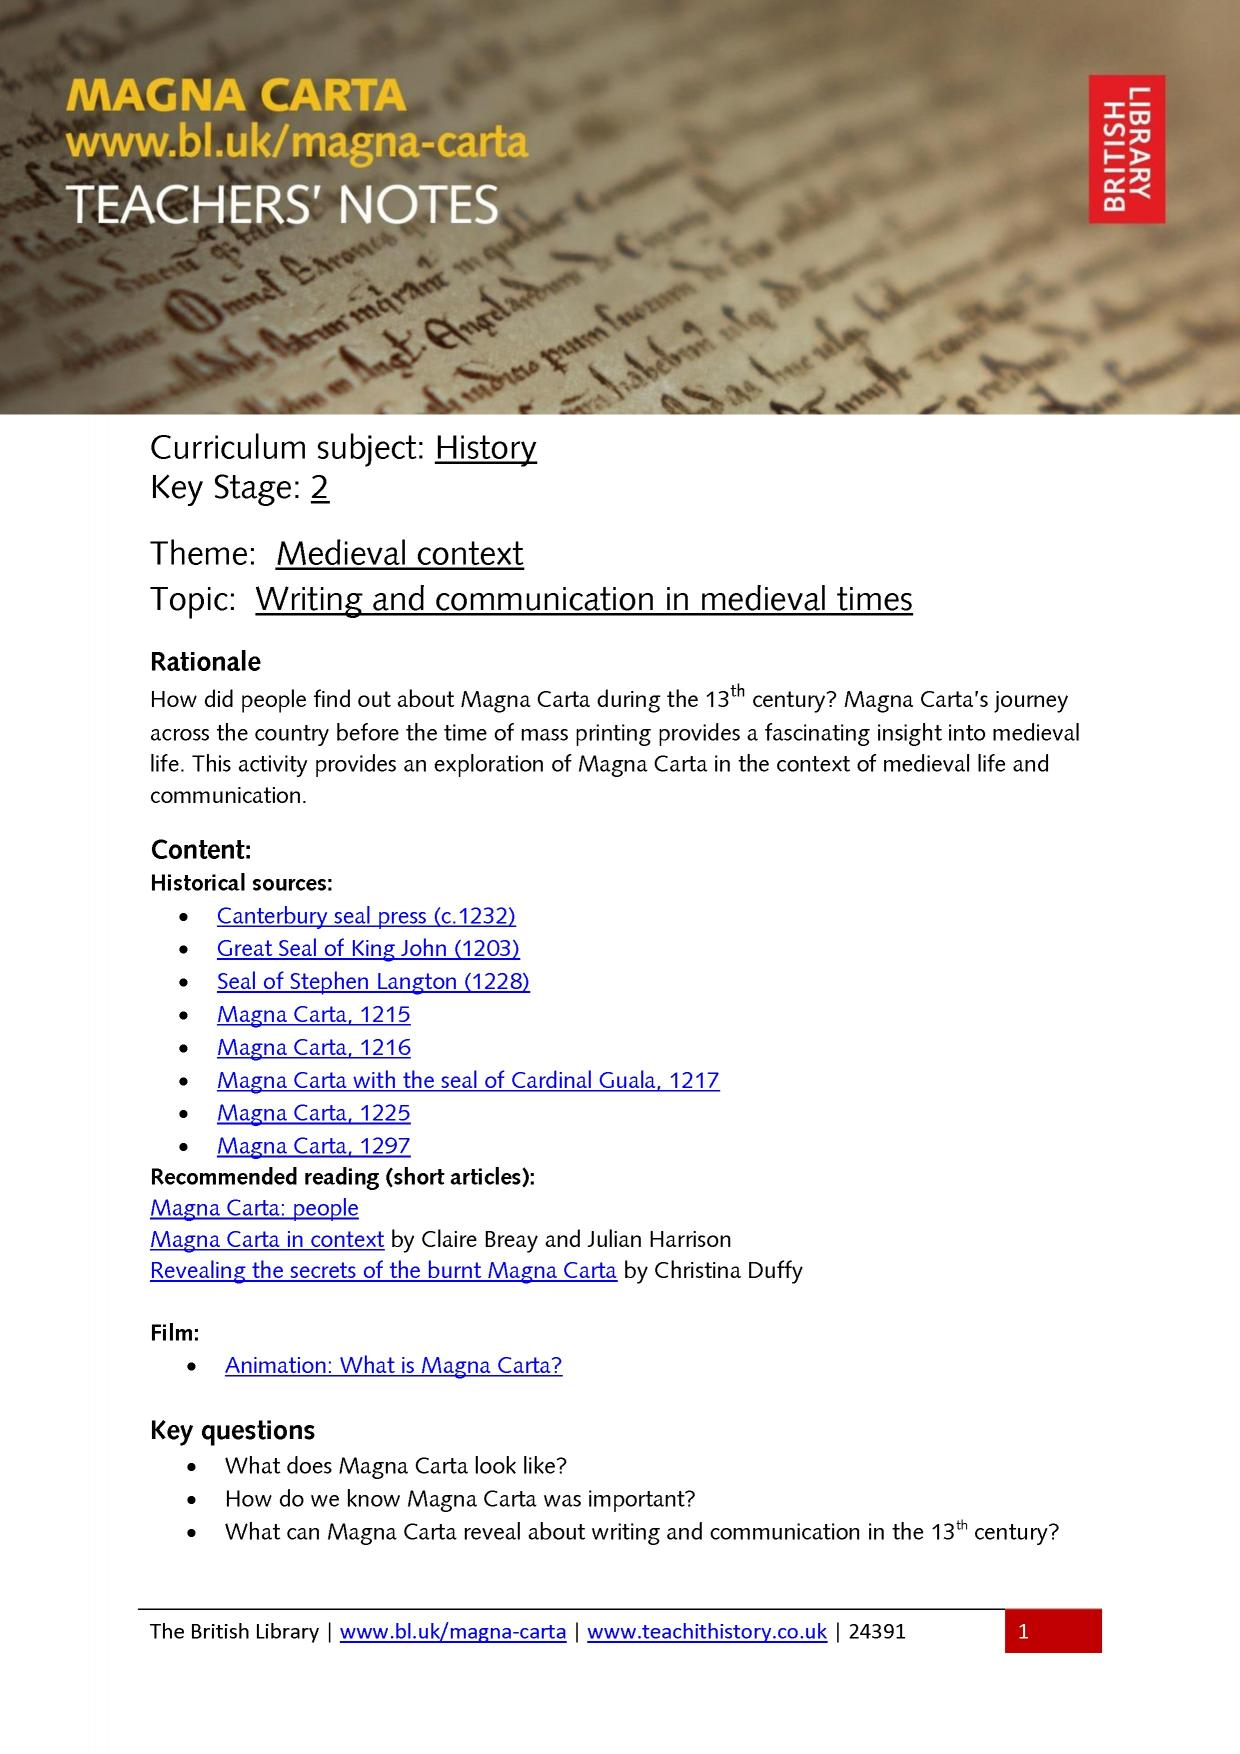 indian magna carta - write an essay Magna carta essay - get started with research paper writing and write finest college research paper ever entrust your assignments to the most talented writers.